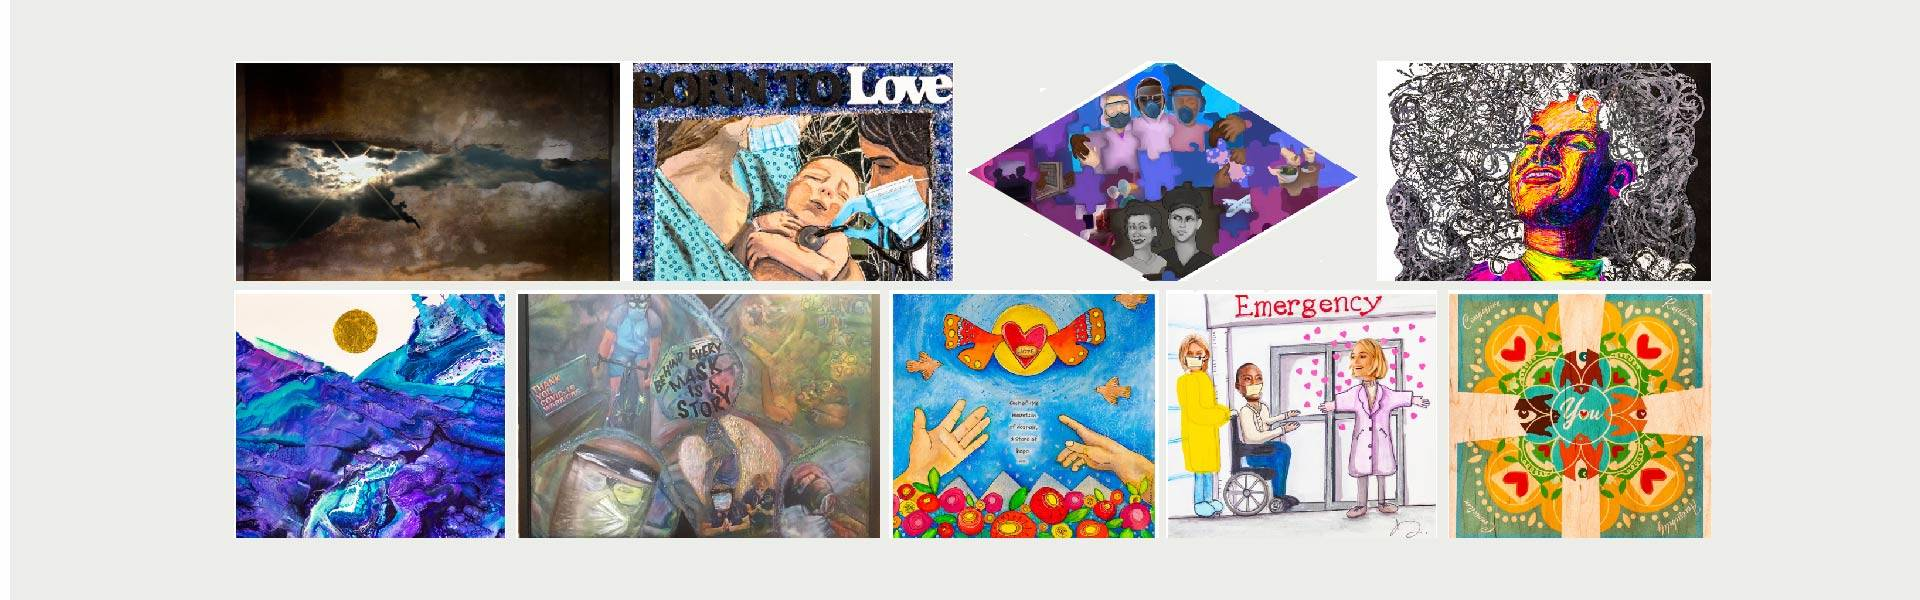 Collage images of Healing Reflections gallery